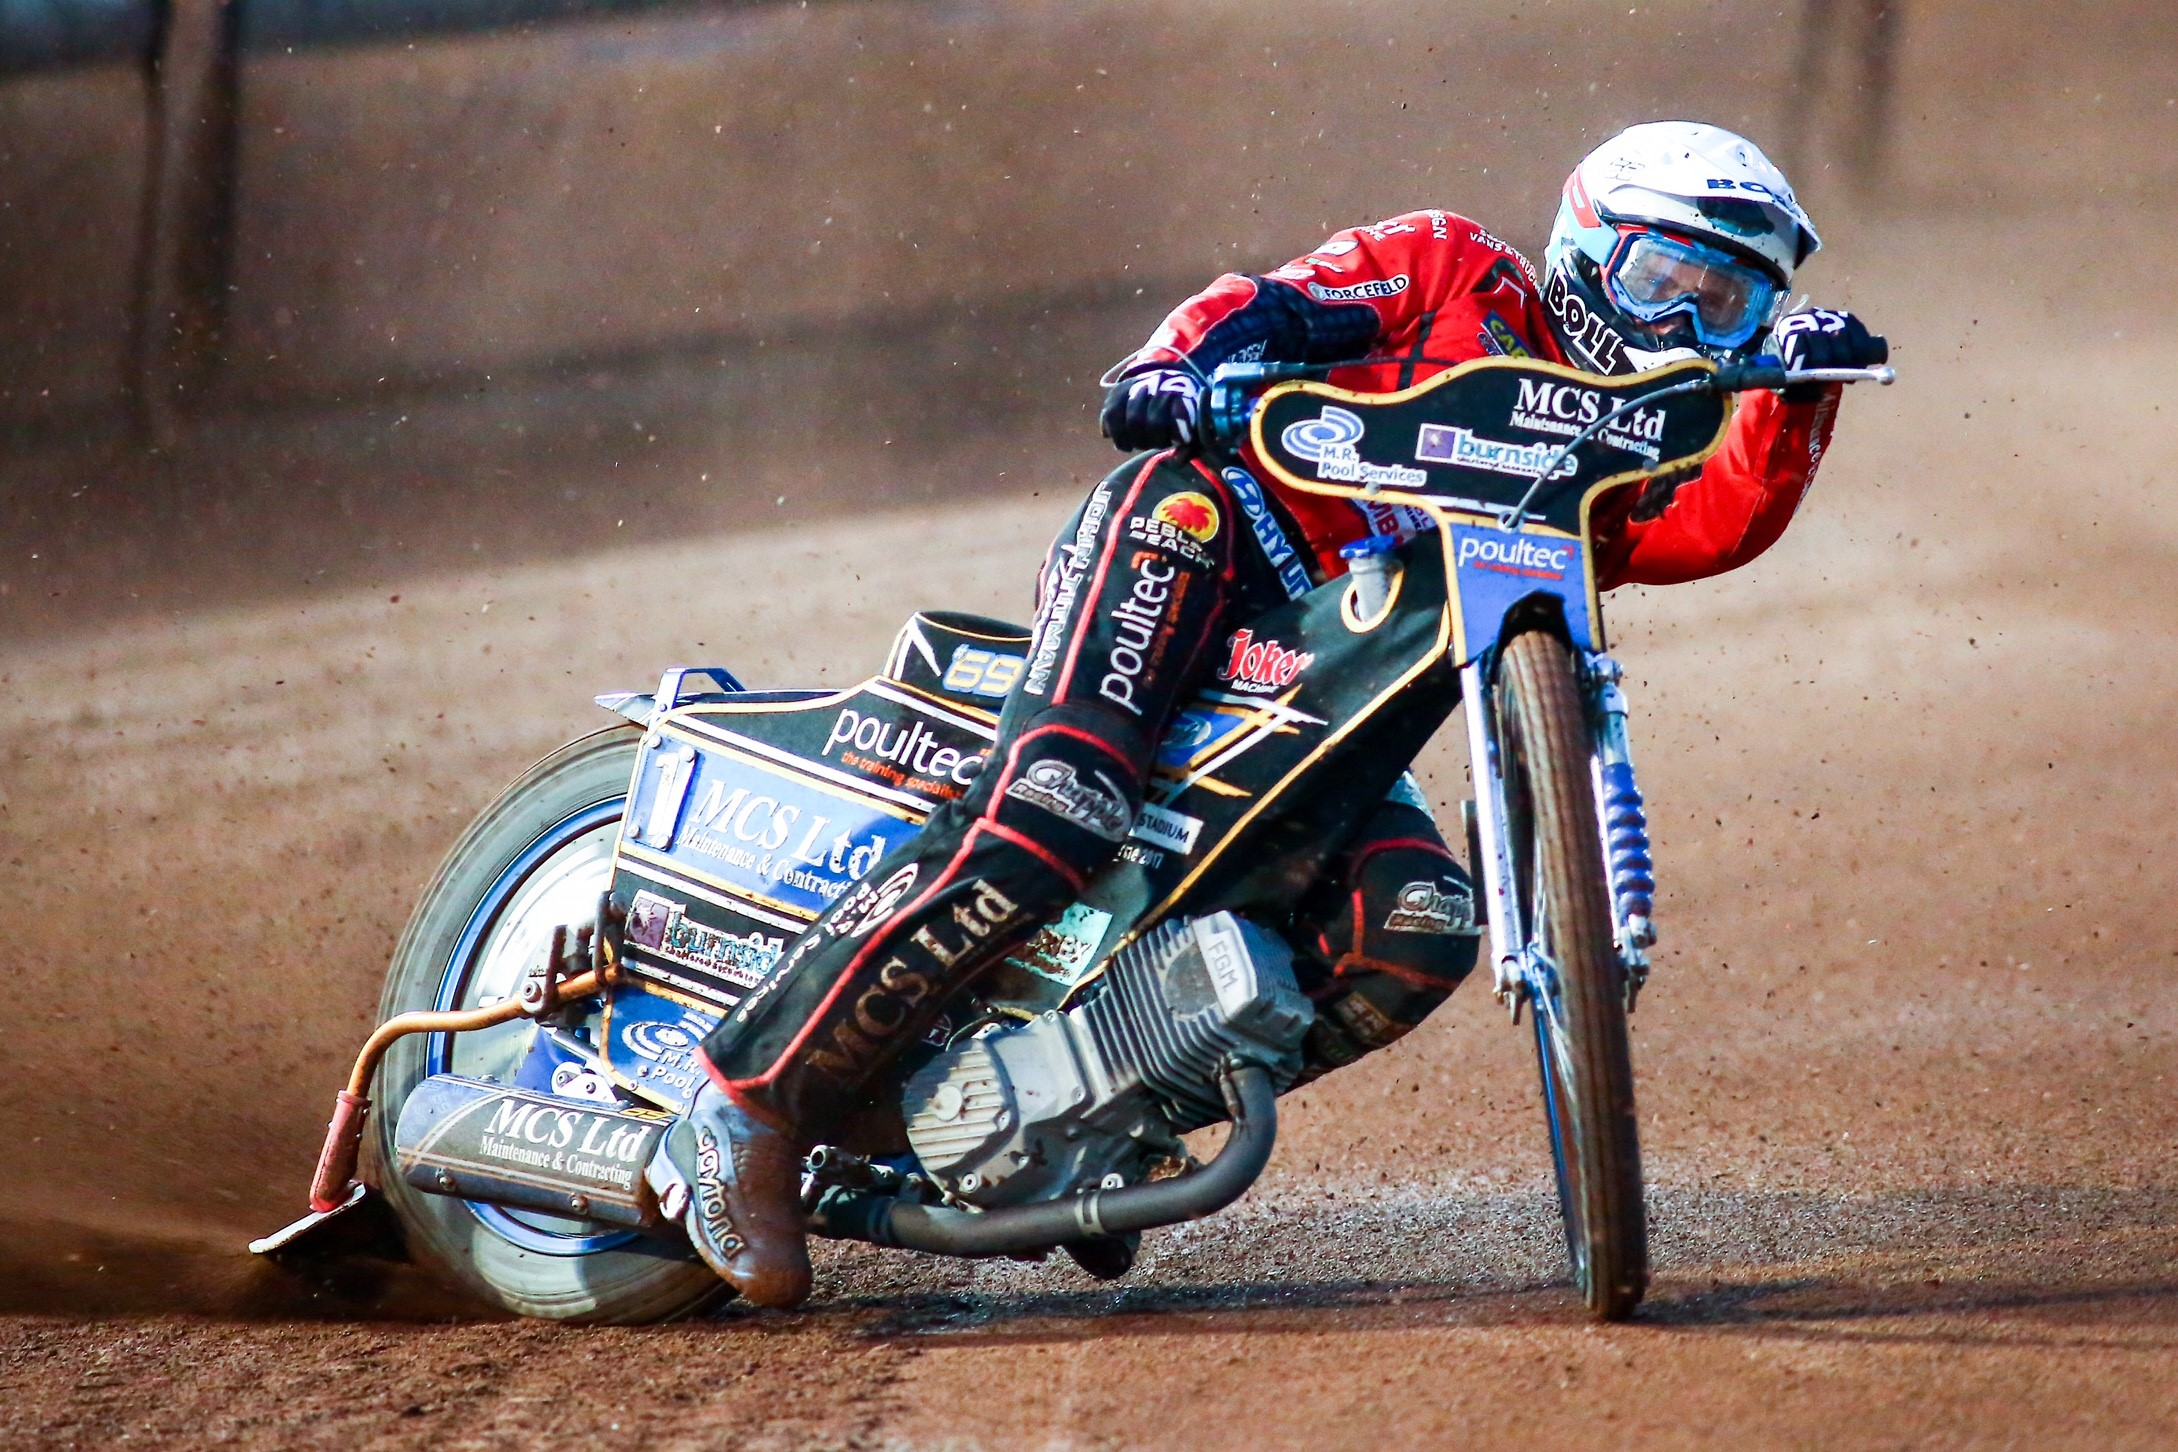 Jason Doyle riding in Swindon colours